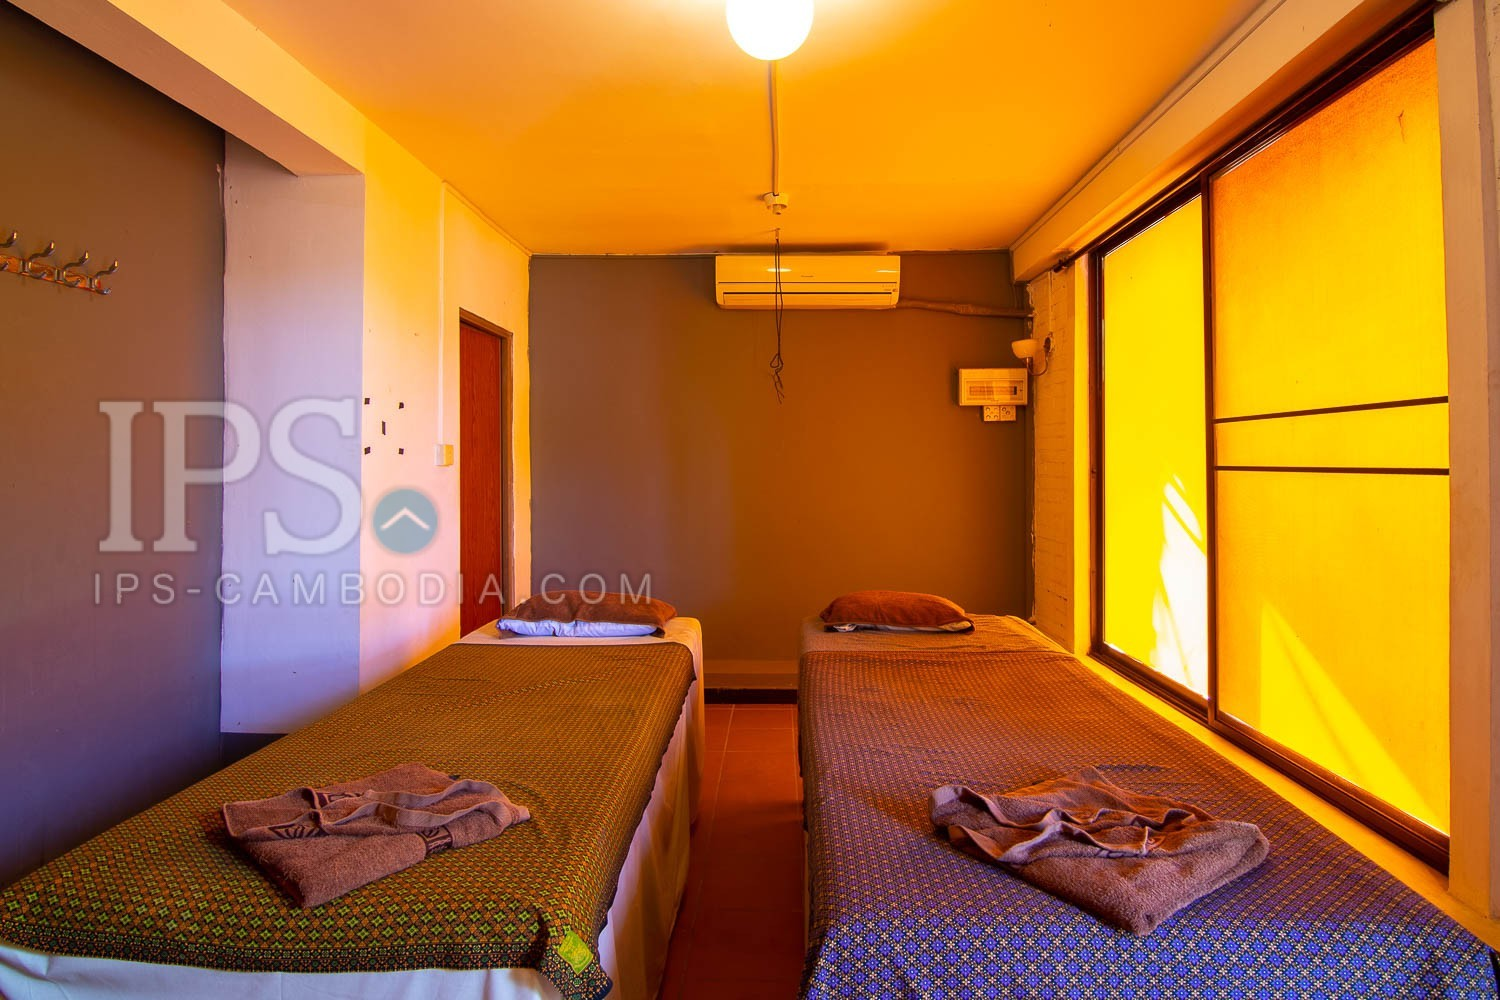 16 Room Massage Space For Rent - Road 60, Siem Reap